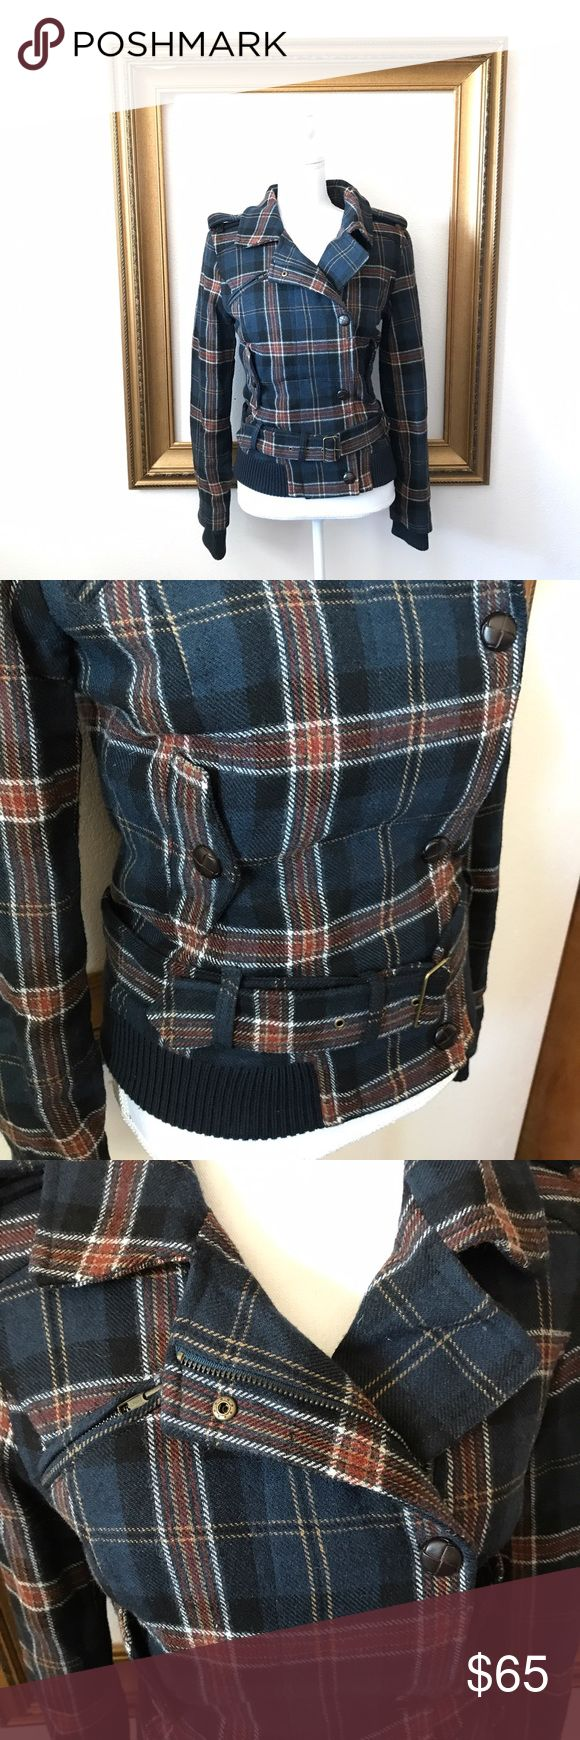 MNG by Mango blue plaid Moro zip winter jacket XS In excellent used condition! 18.5 inches armpit to armpit. 22 inches shoulder to bottom of jacket. 19 inches armpit to end of sleeve. Mango Jackets & Coats